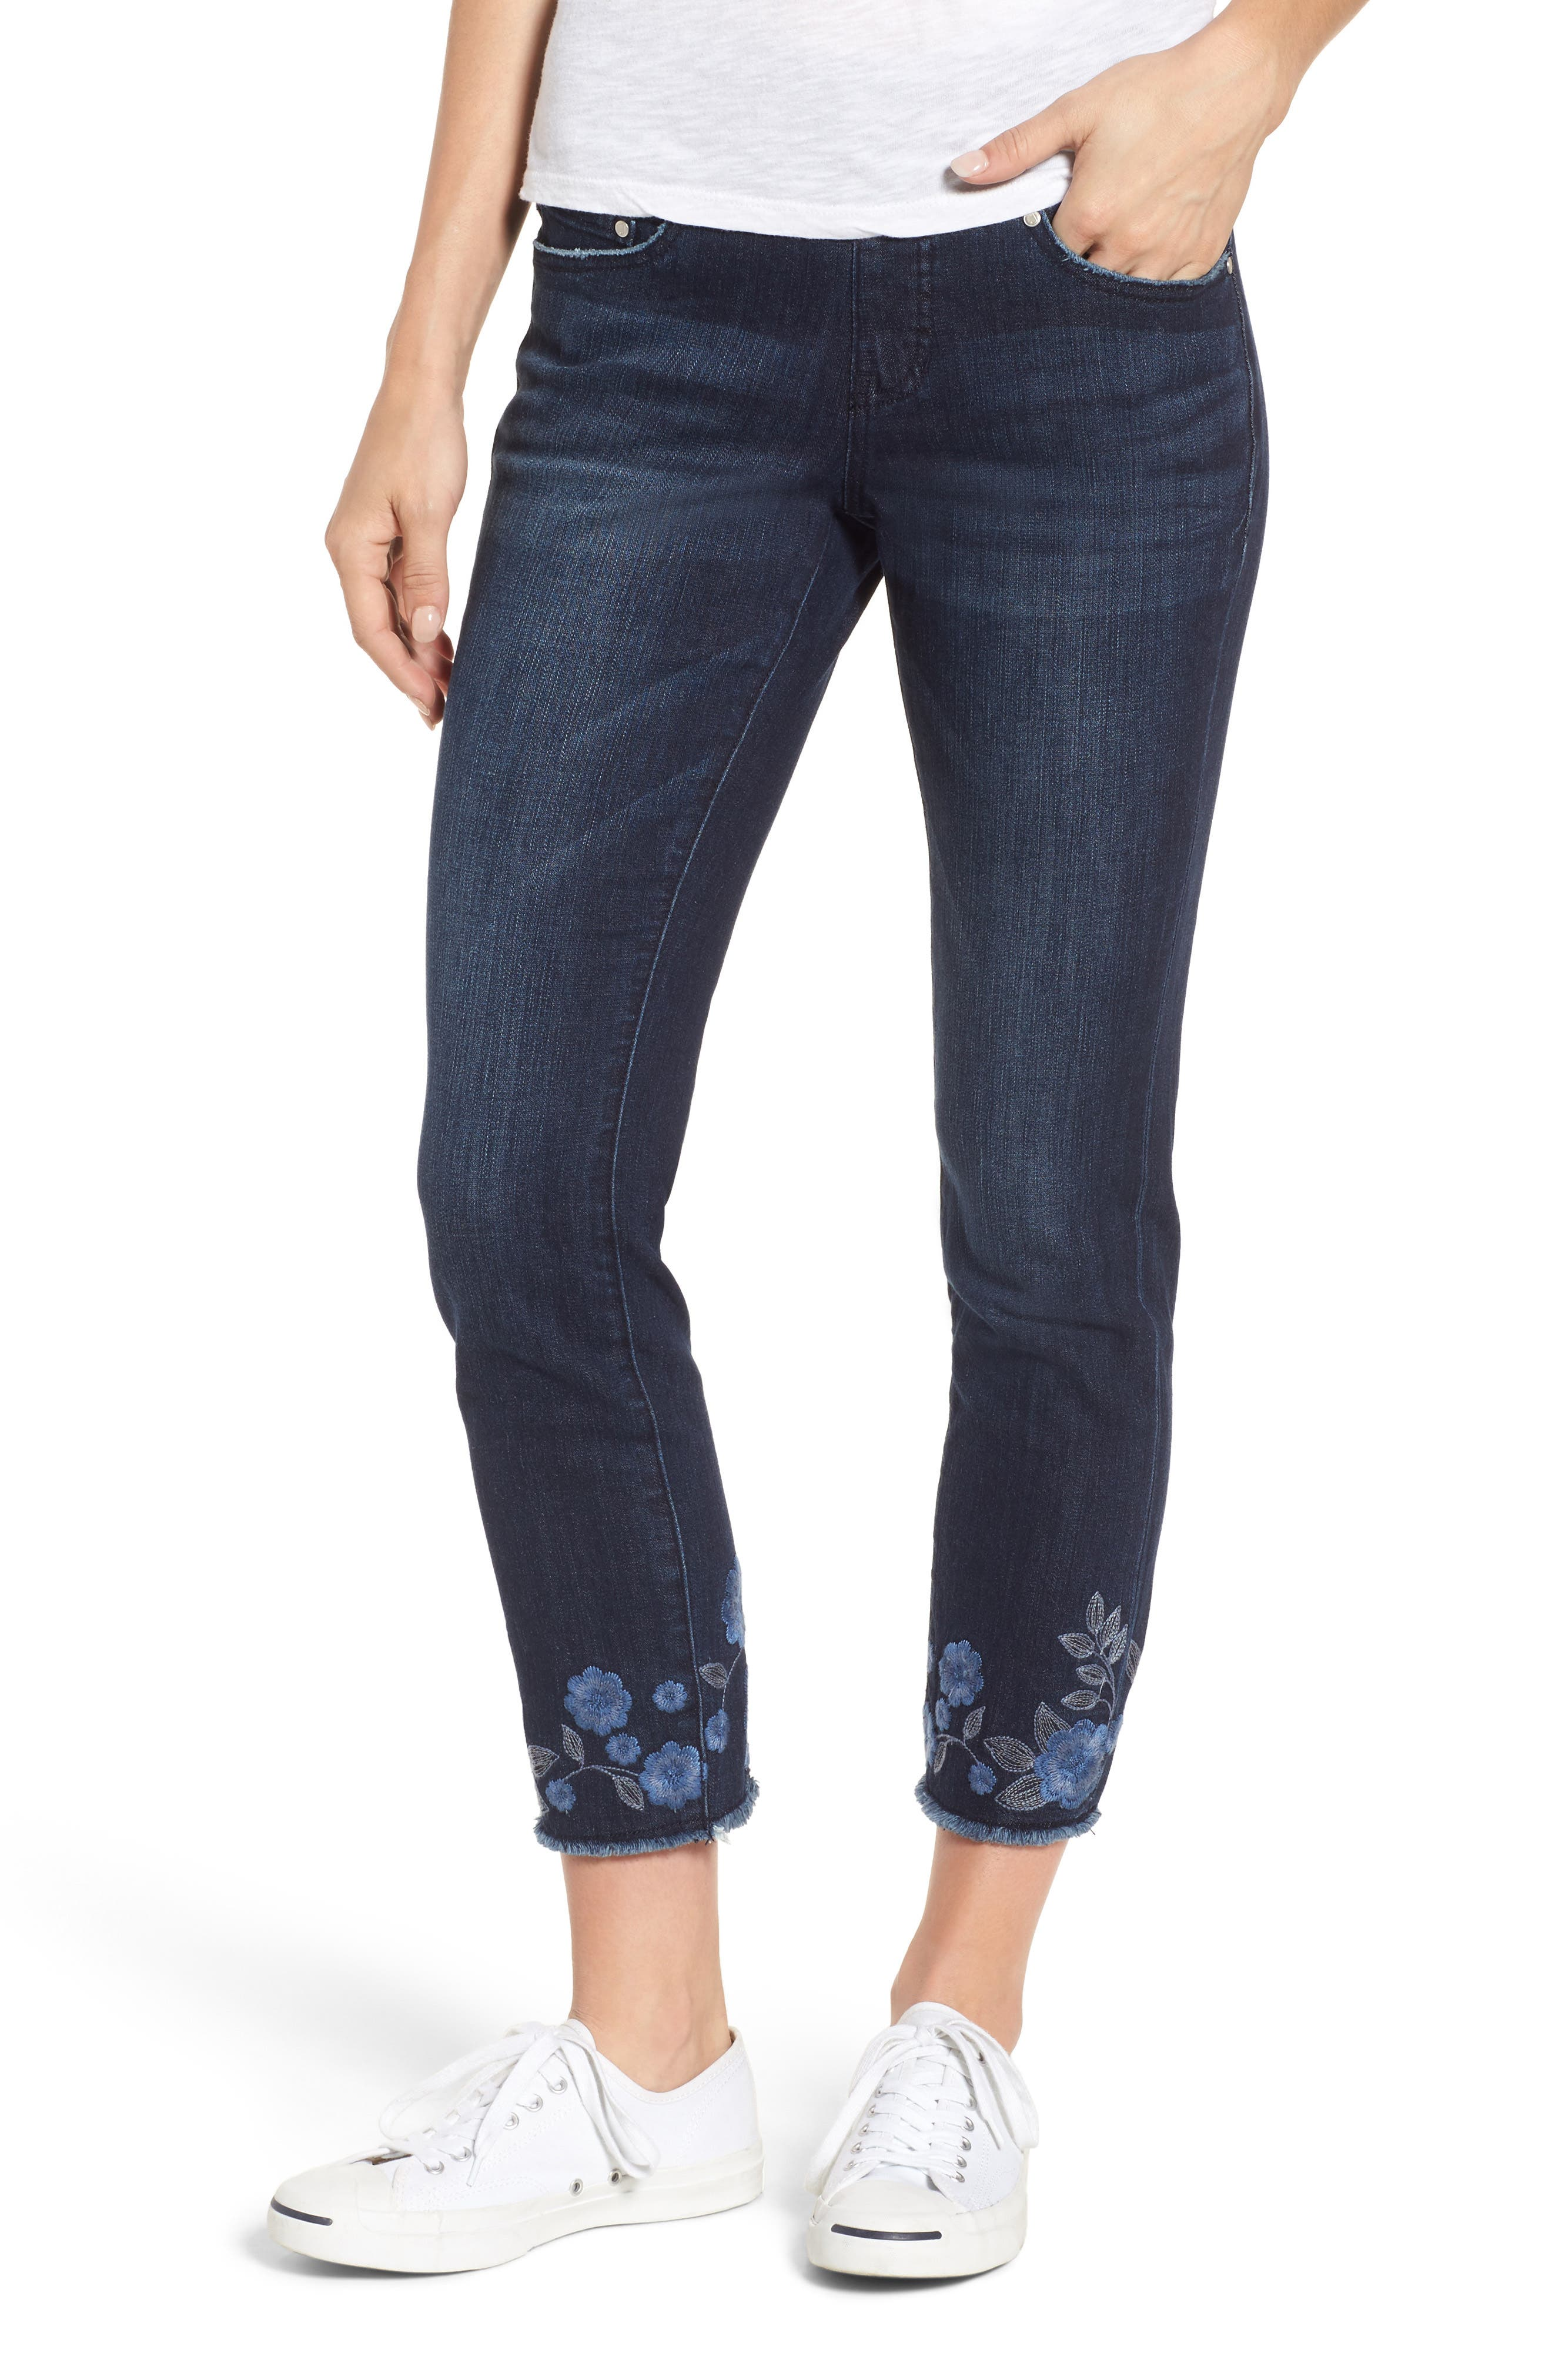 Amelia Embroidered Slim Ankle Jeans,                             Main thumbnail 1, color,                             402